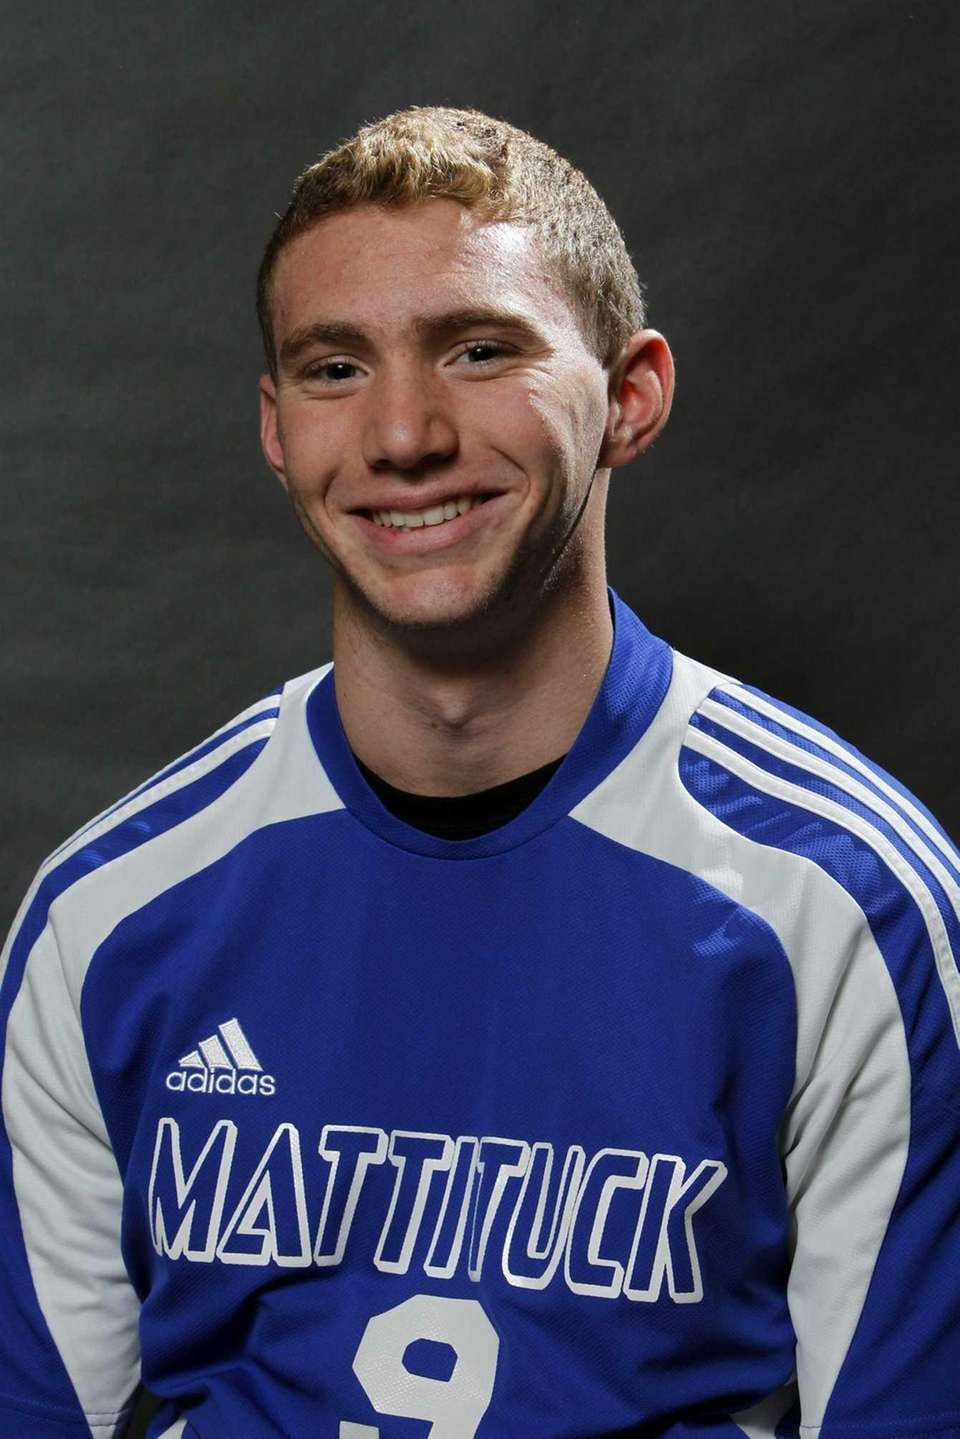 DAVID BURKHARDT Mattituck, Midfielder, Senior Burkhardt had 24